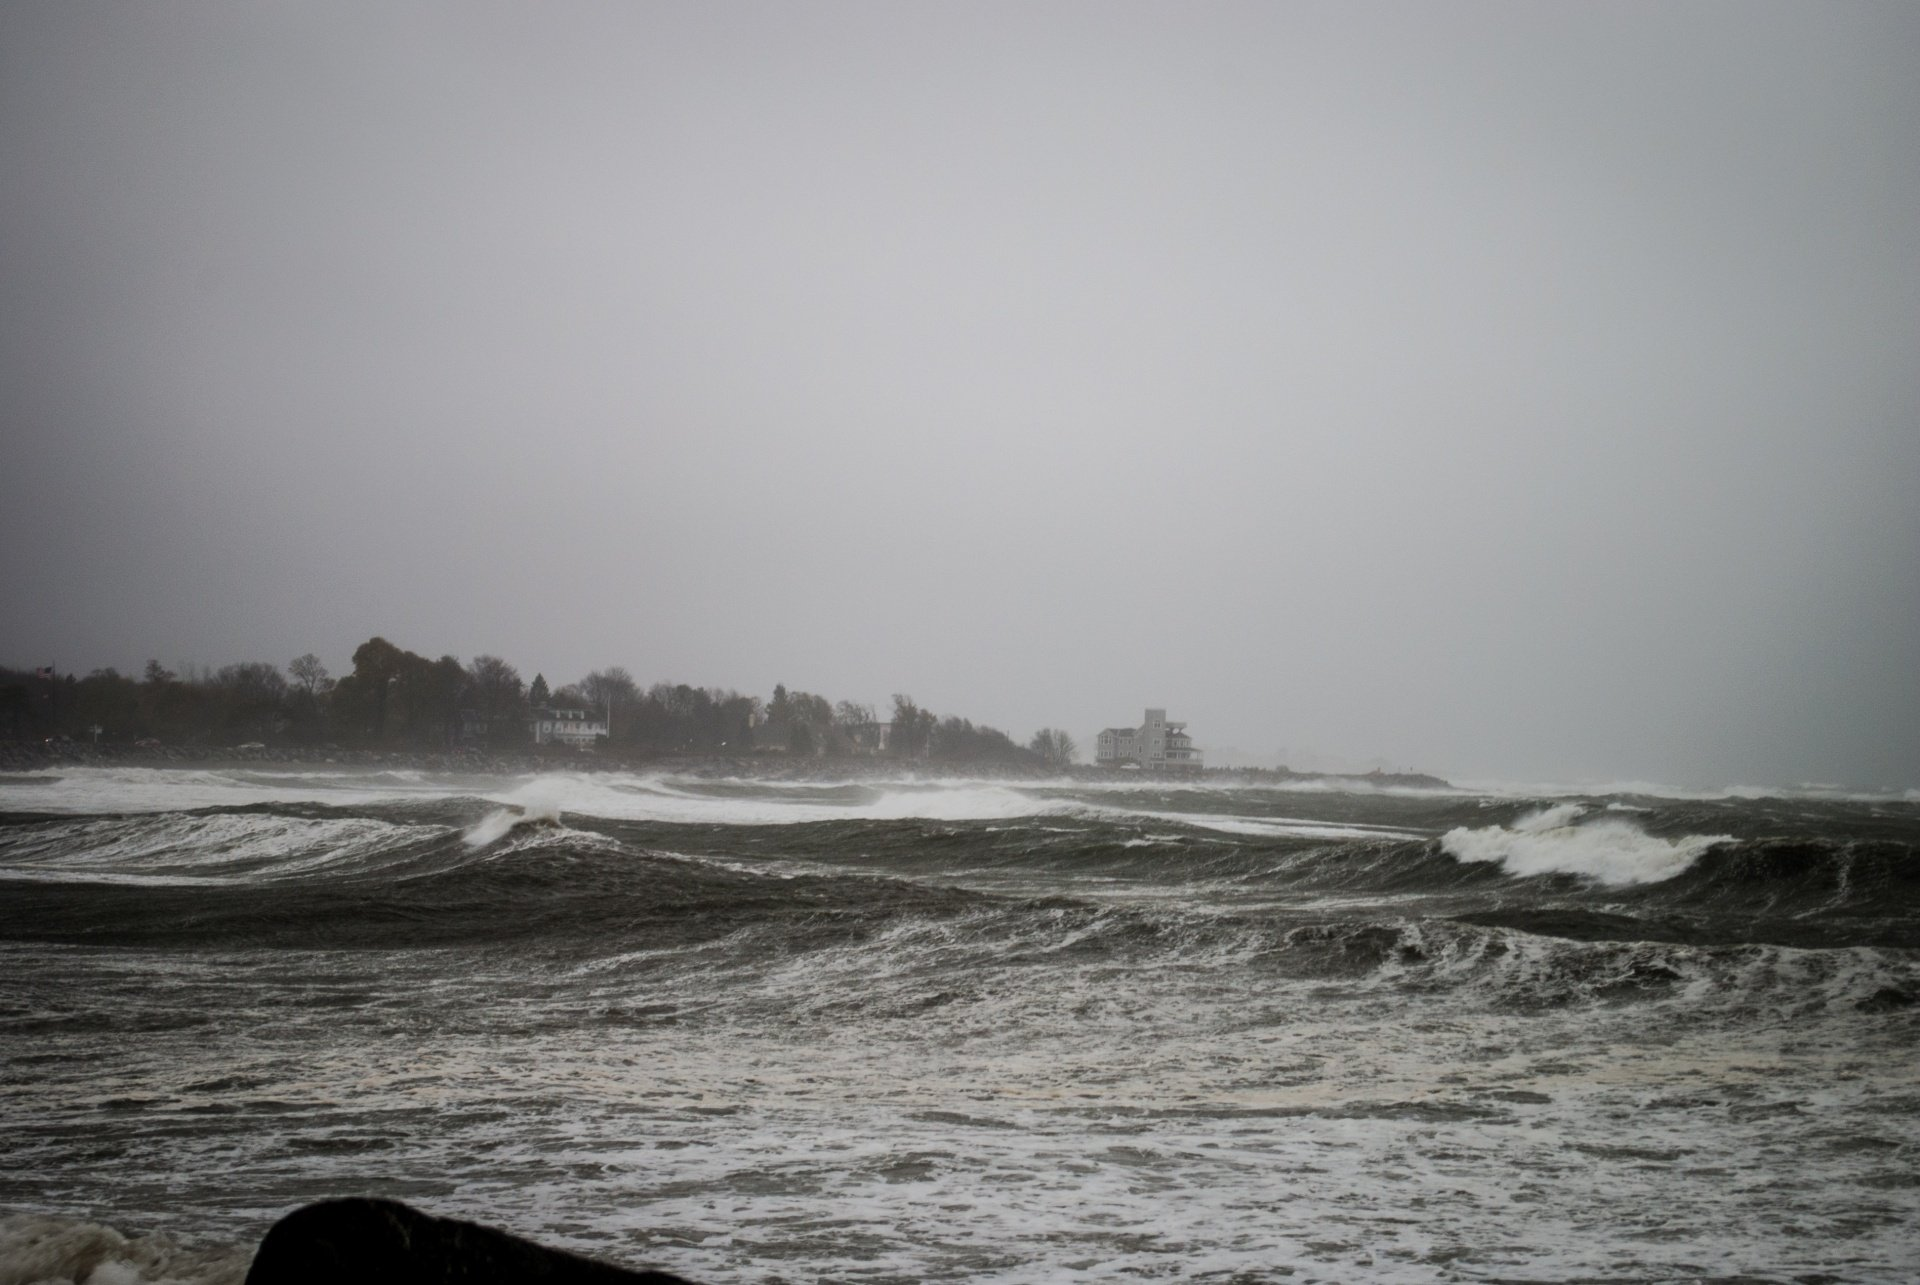 nickpatton's photo of Rye Rocks